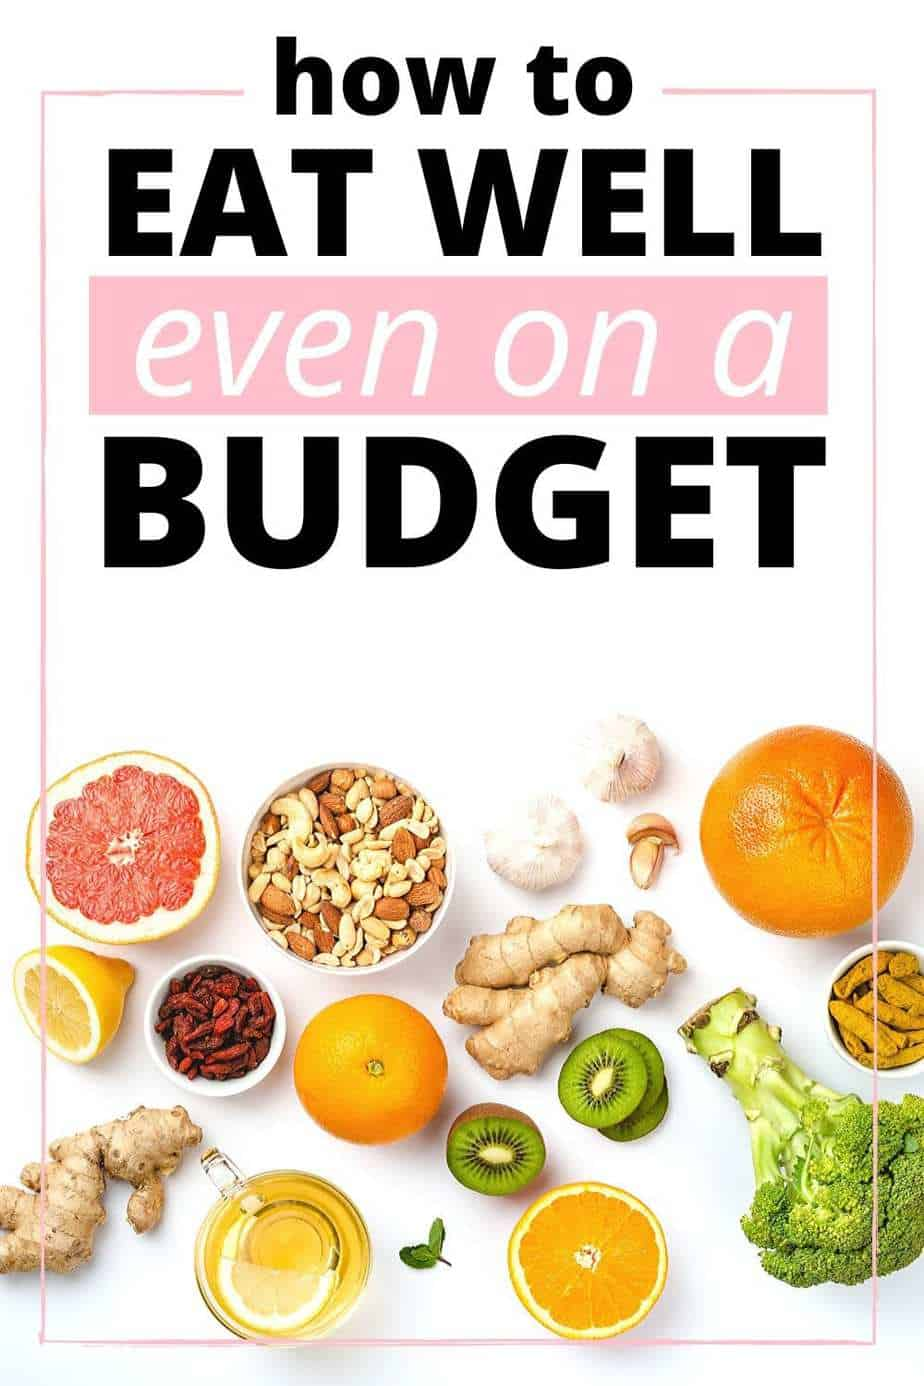 How to eat well even on a budget